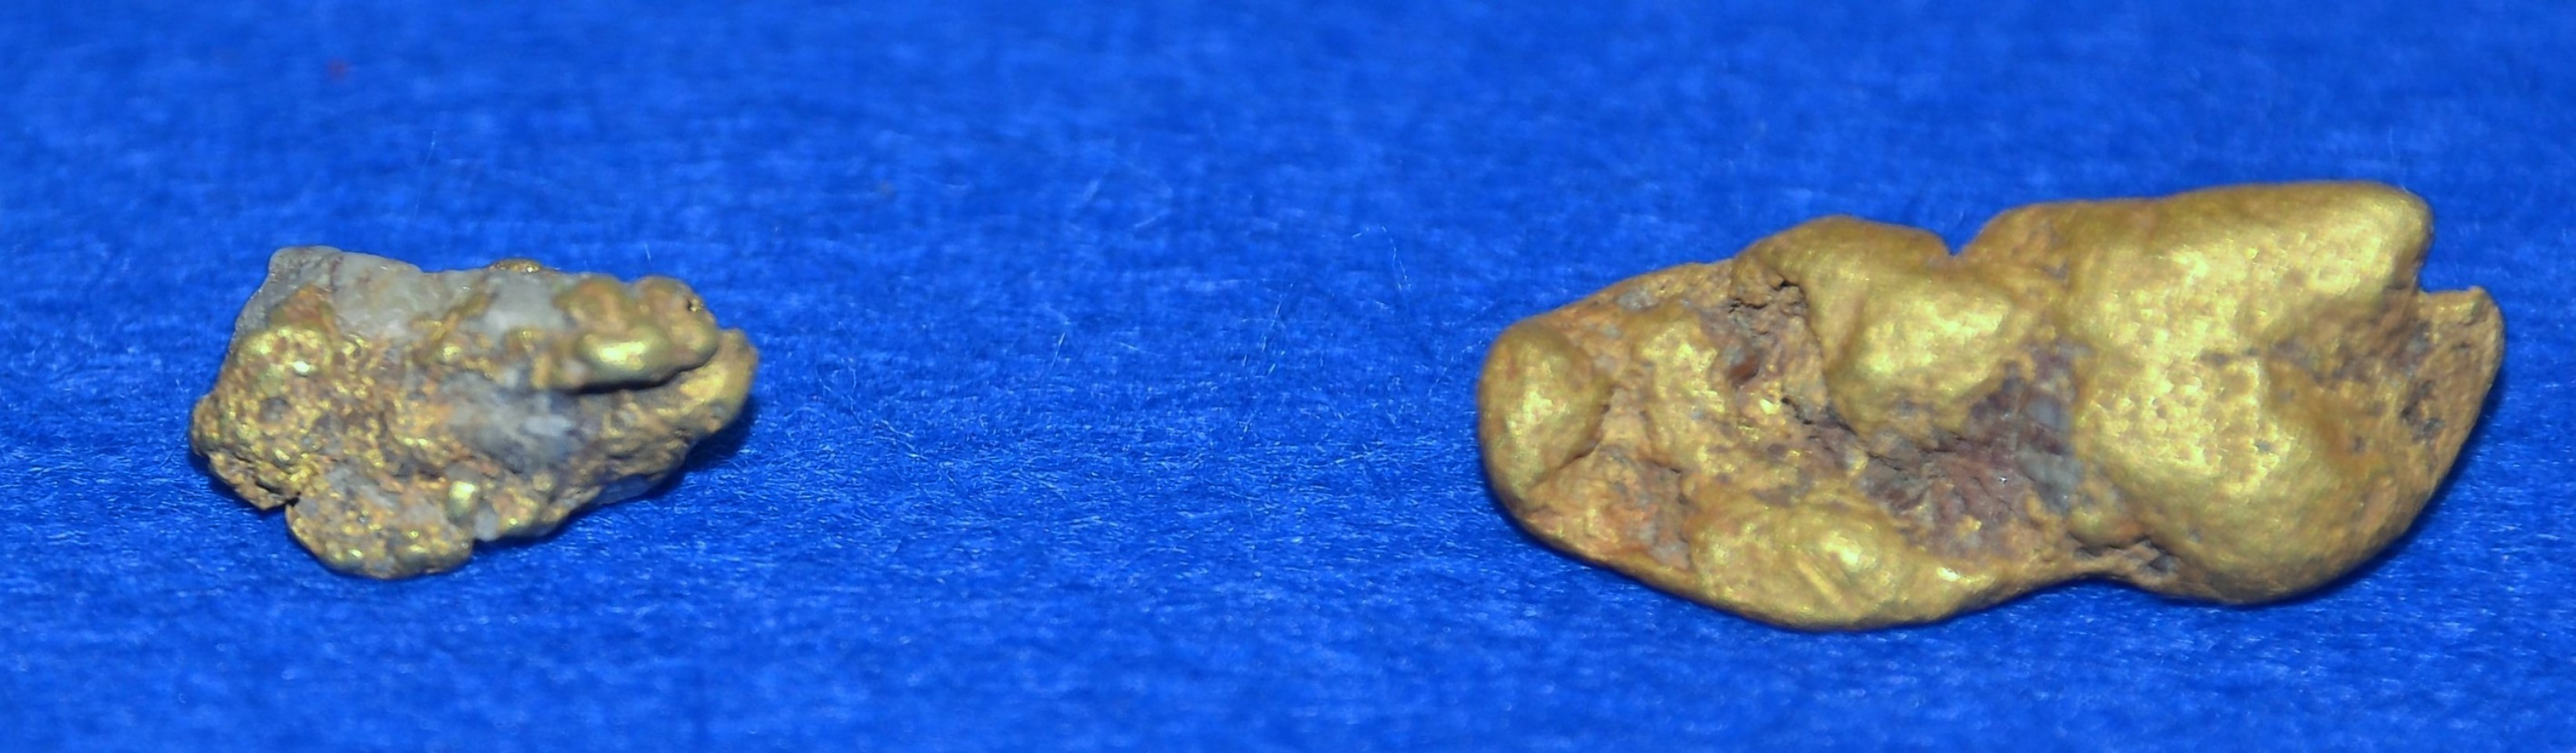 The 18.13 gsm gold nugget found in waters at Wanlockhead, Dumfries and Galloway